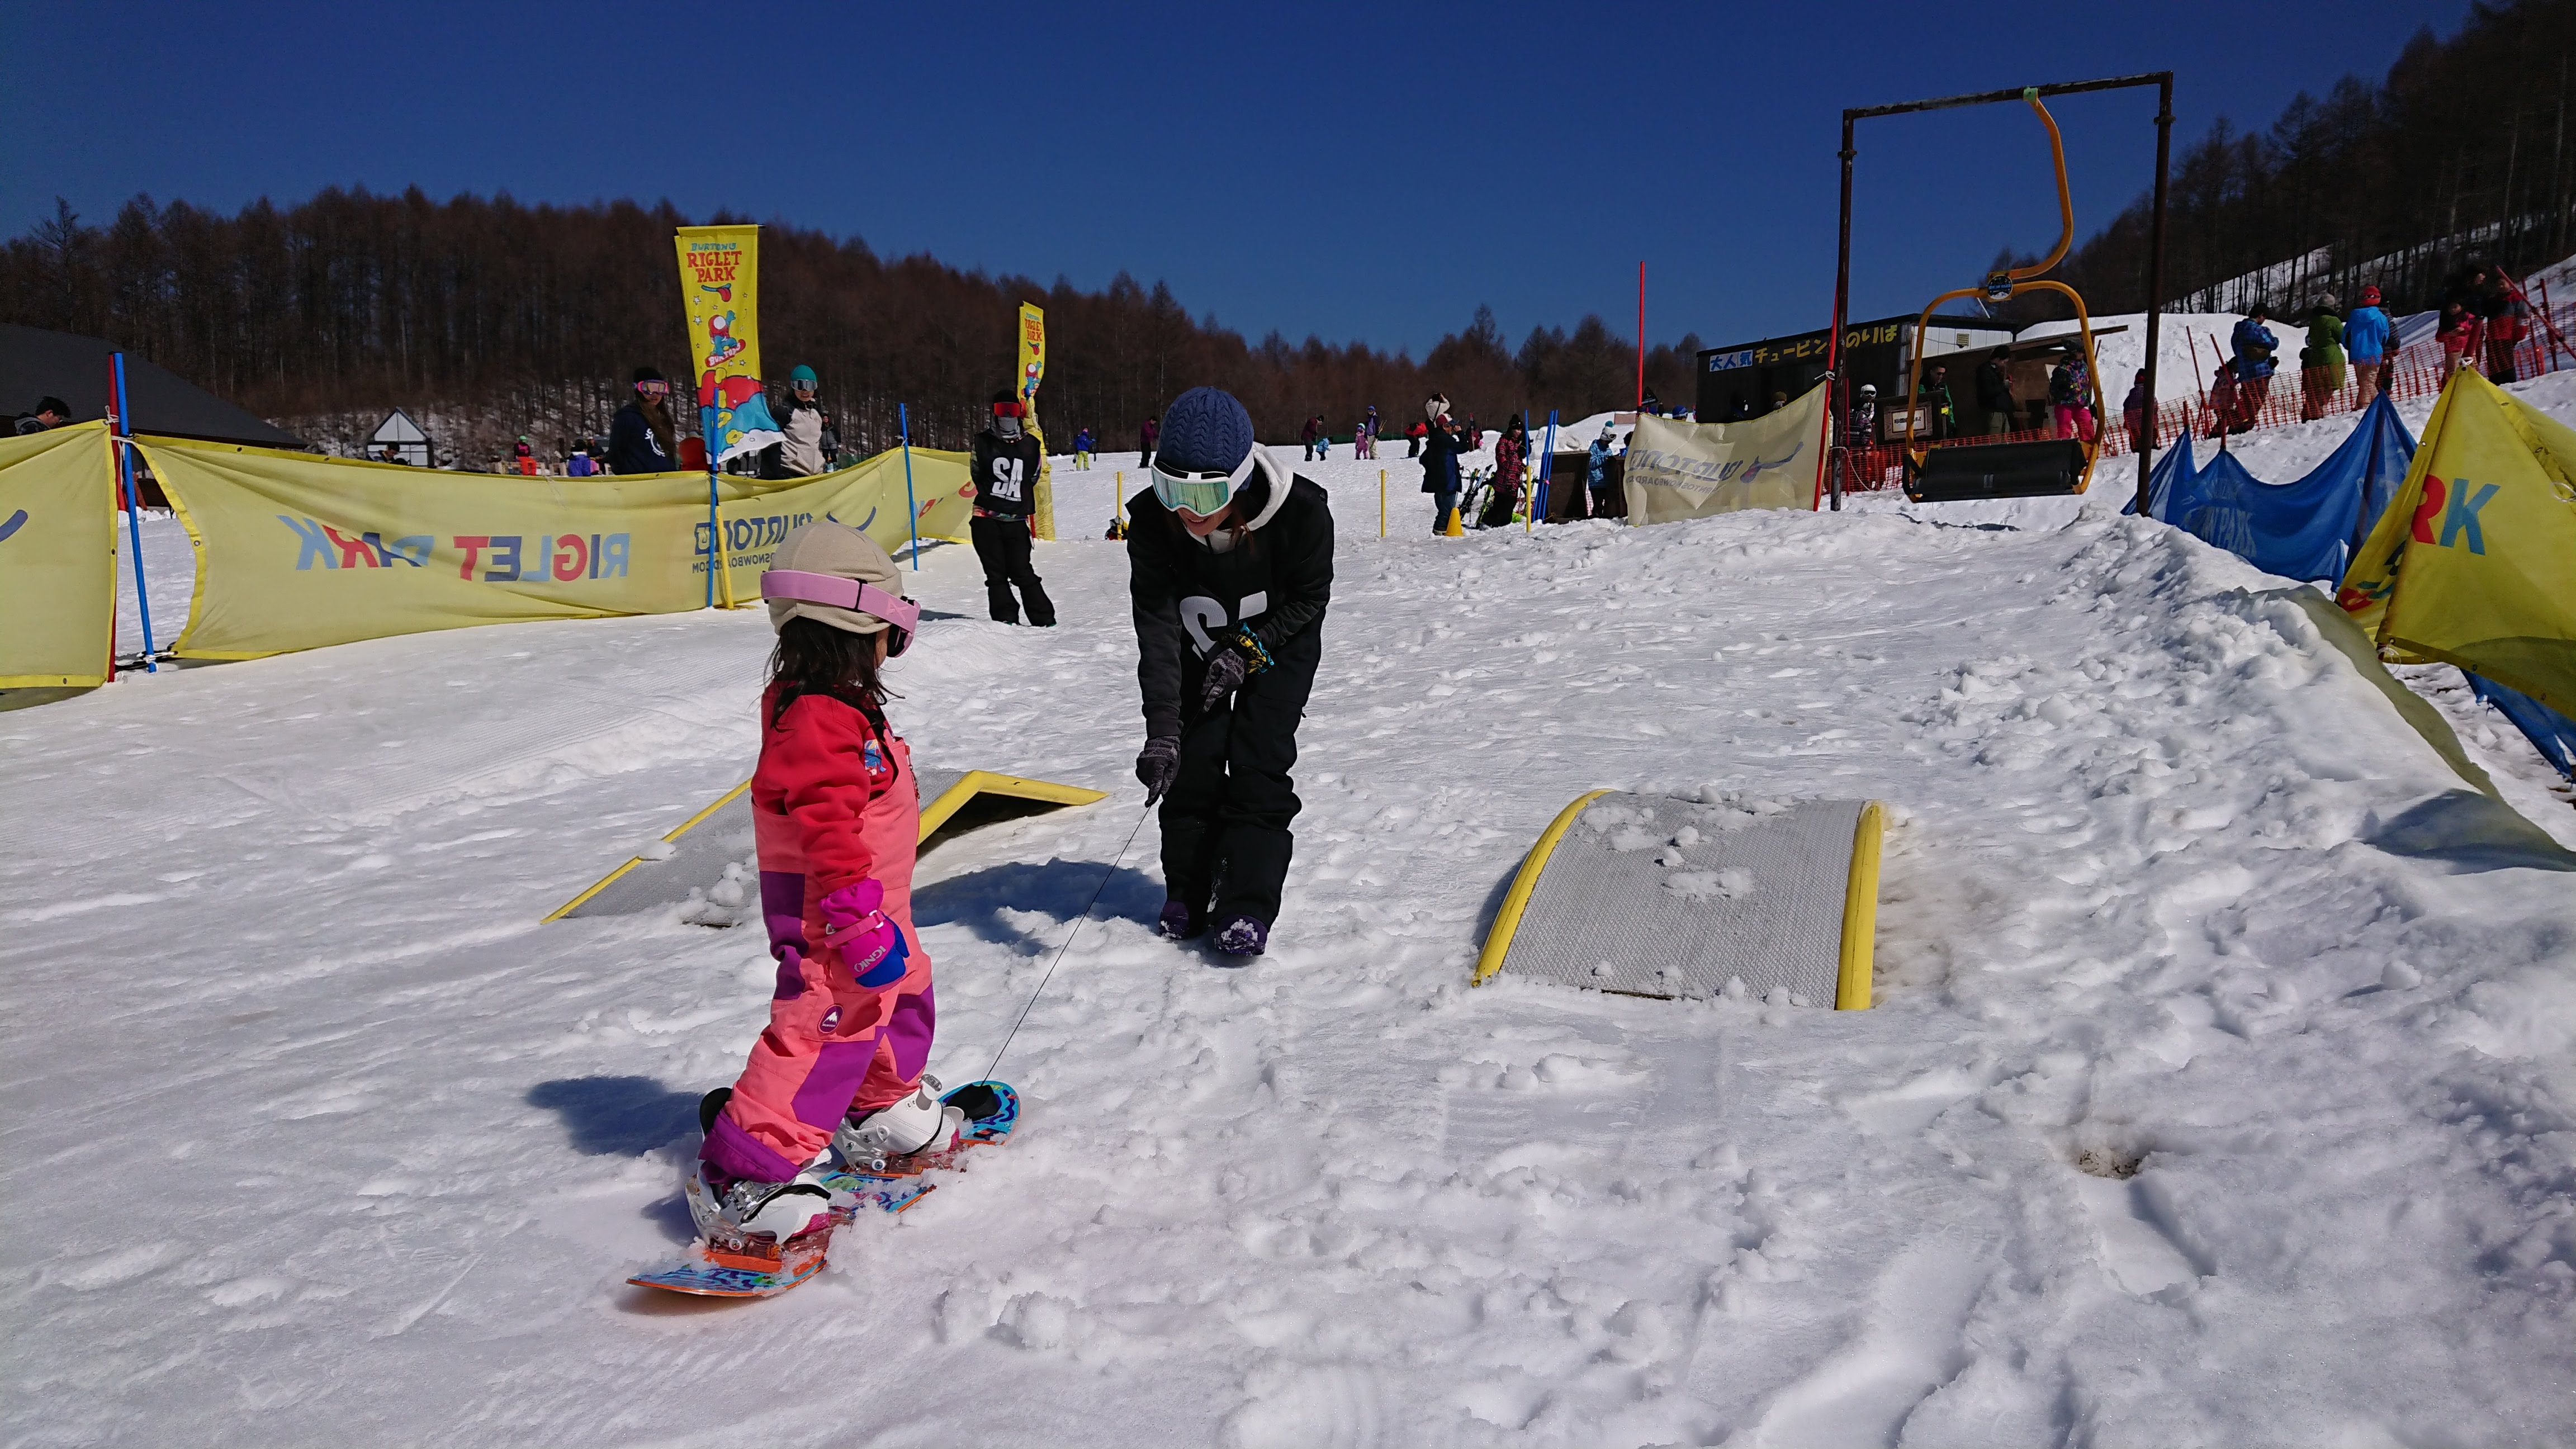 BURTON KID'S RIGLET SCHOOL@軽井沢スノーパーク